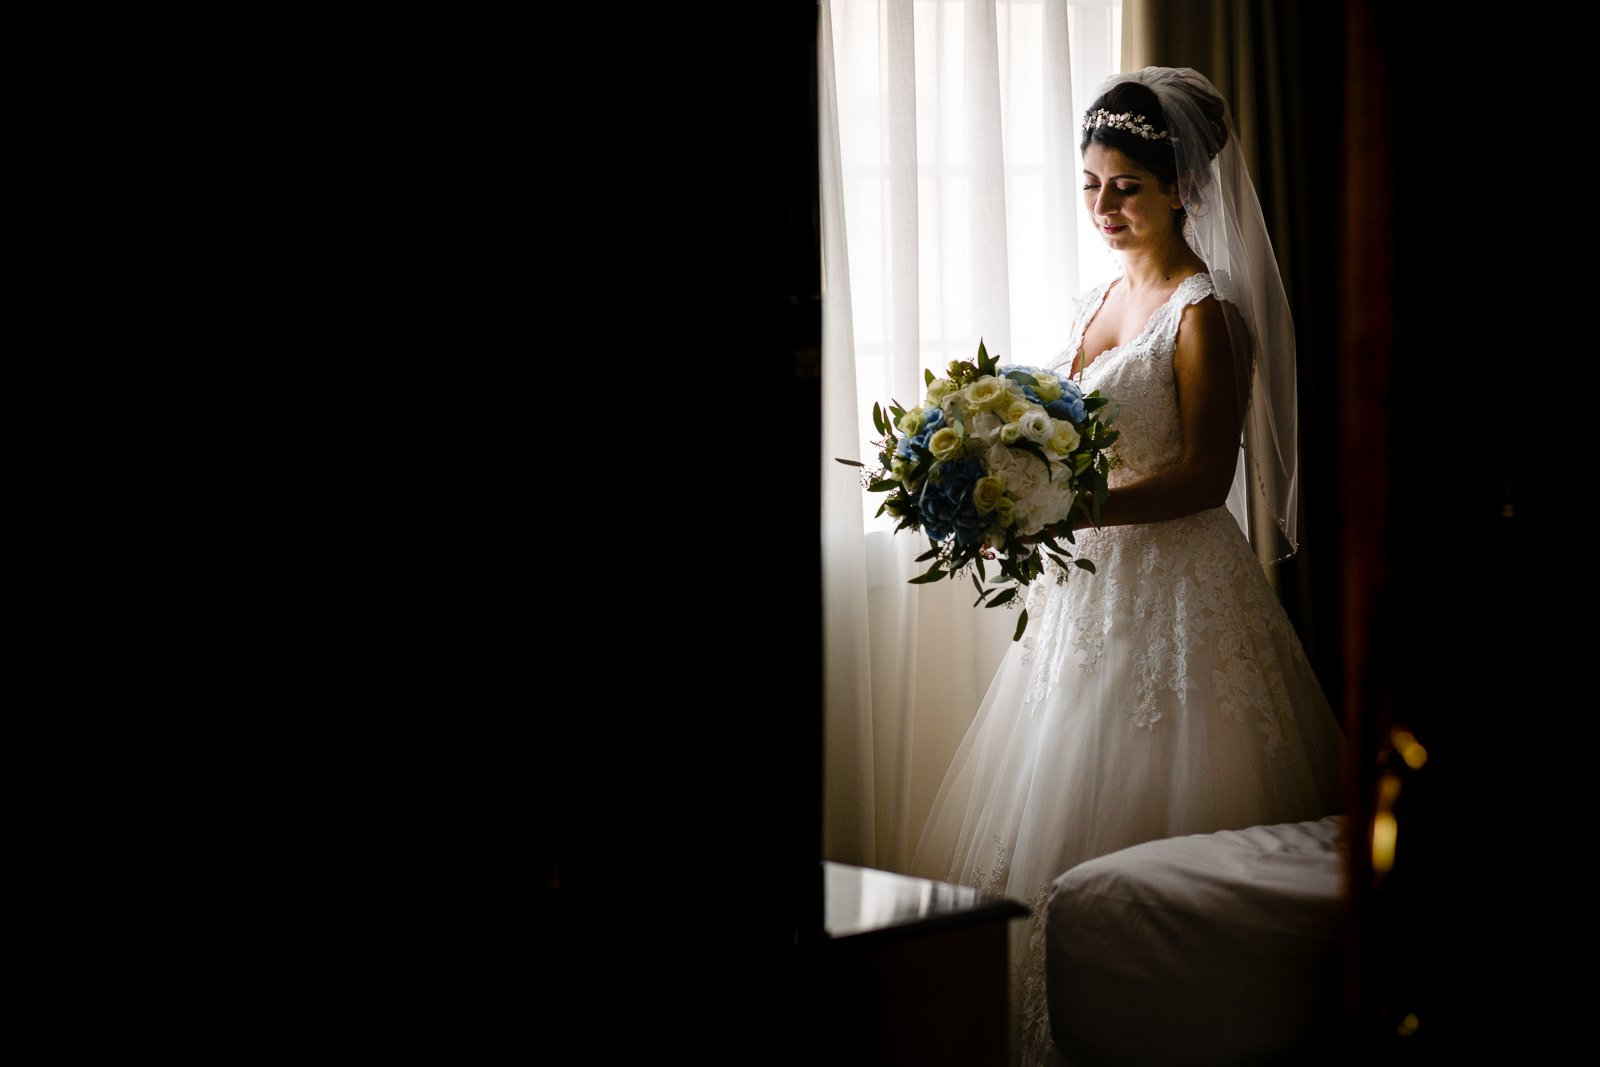 bride standing by the window looking down at her flowers